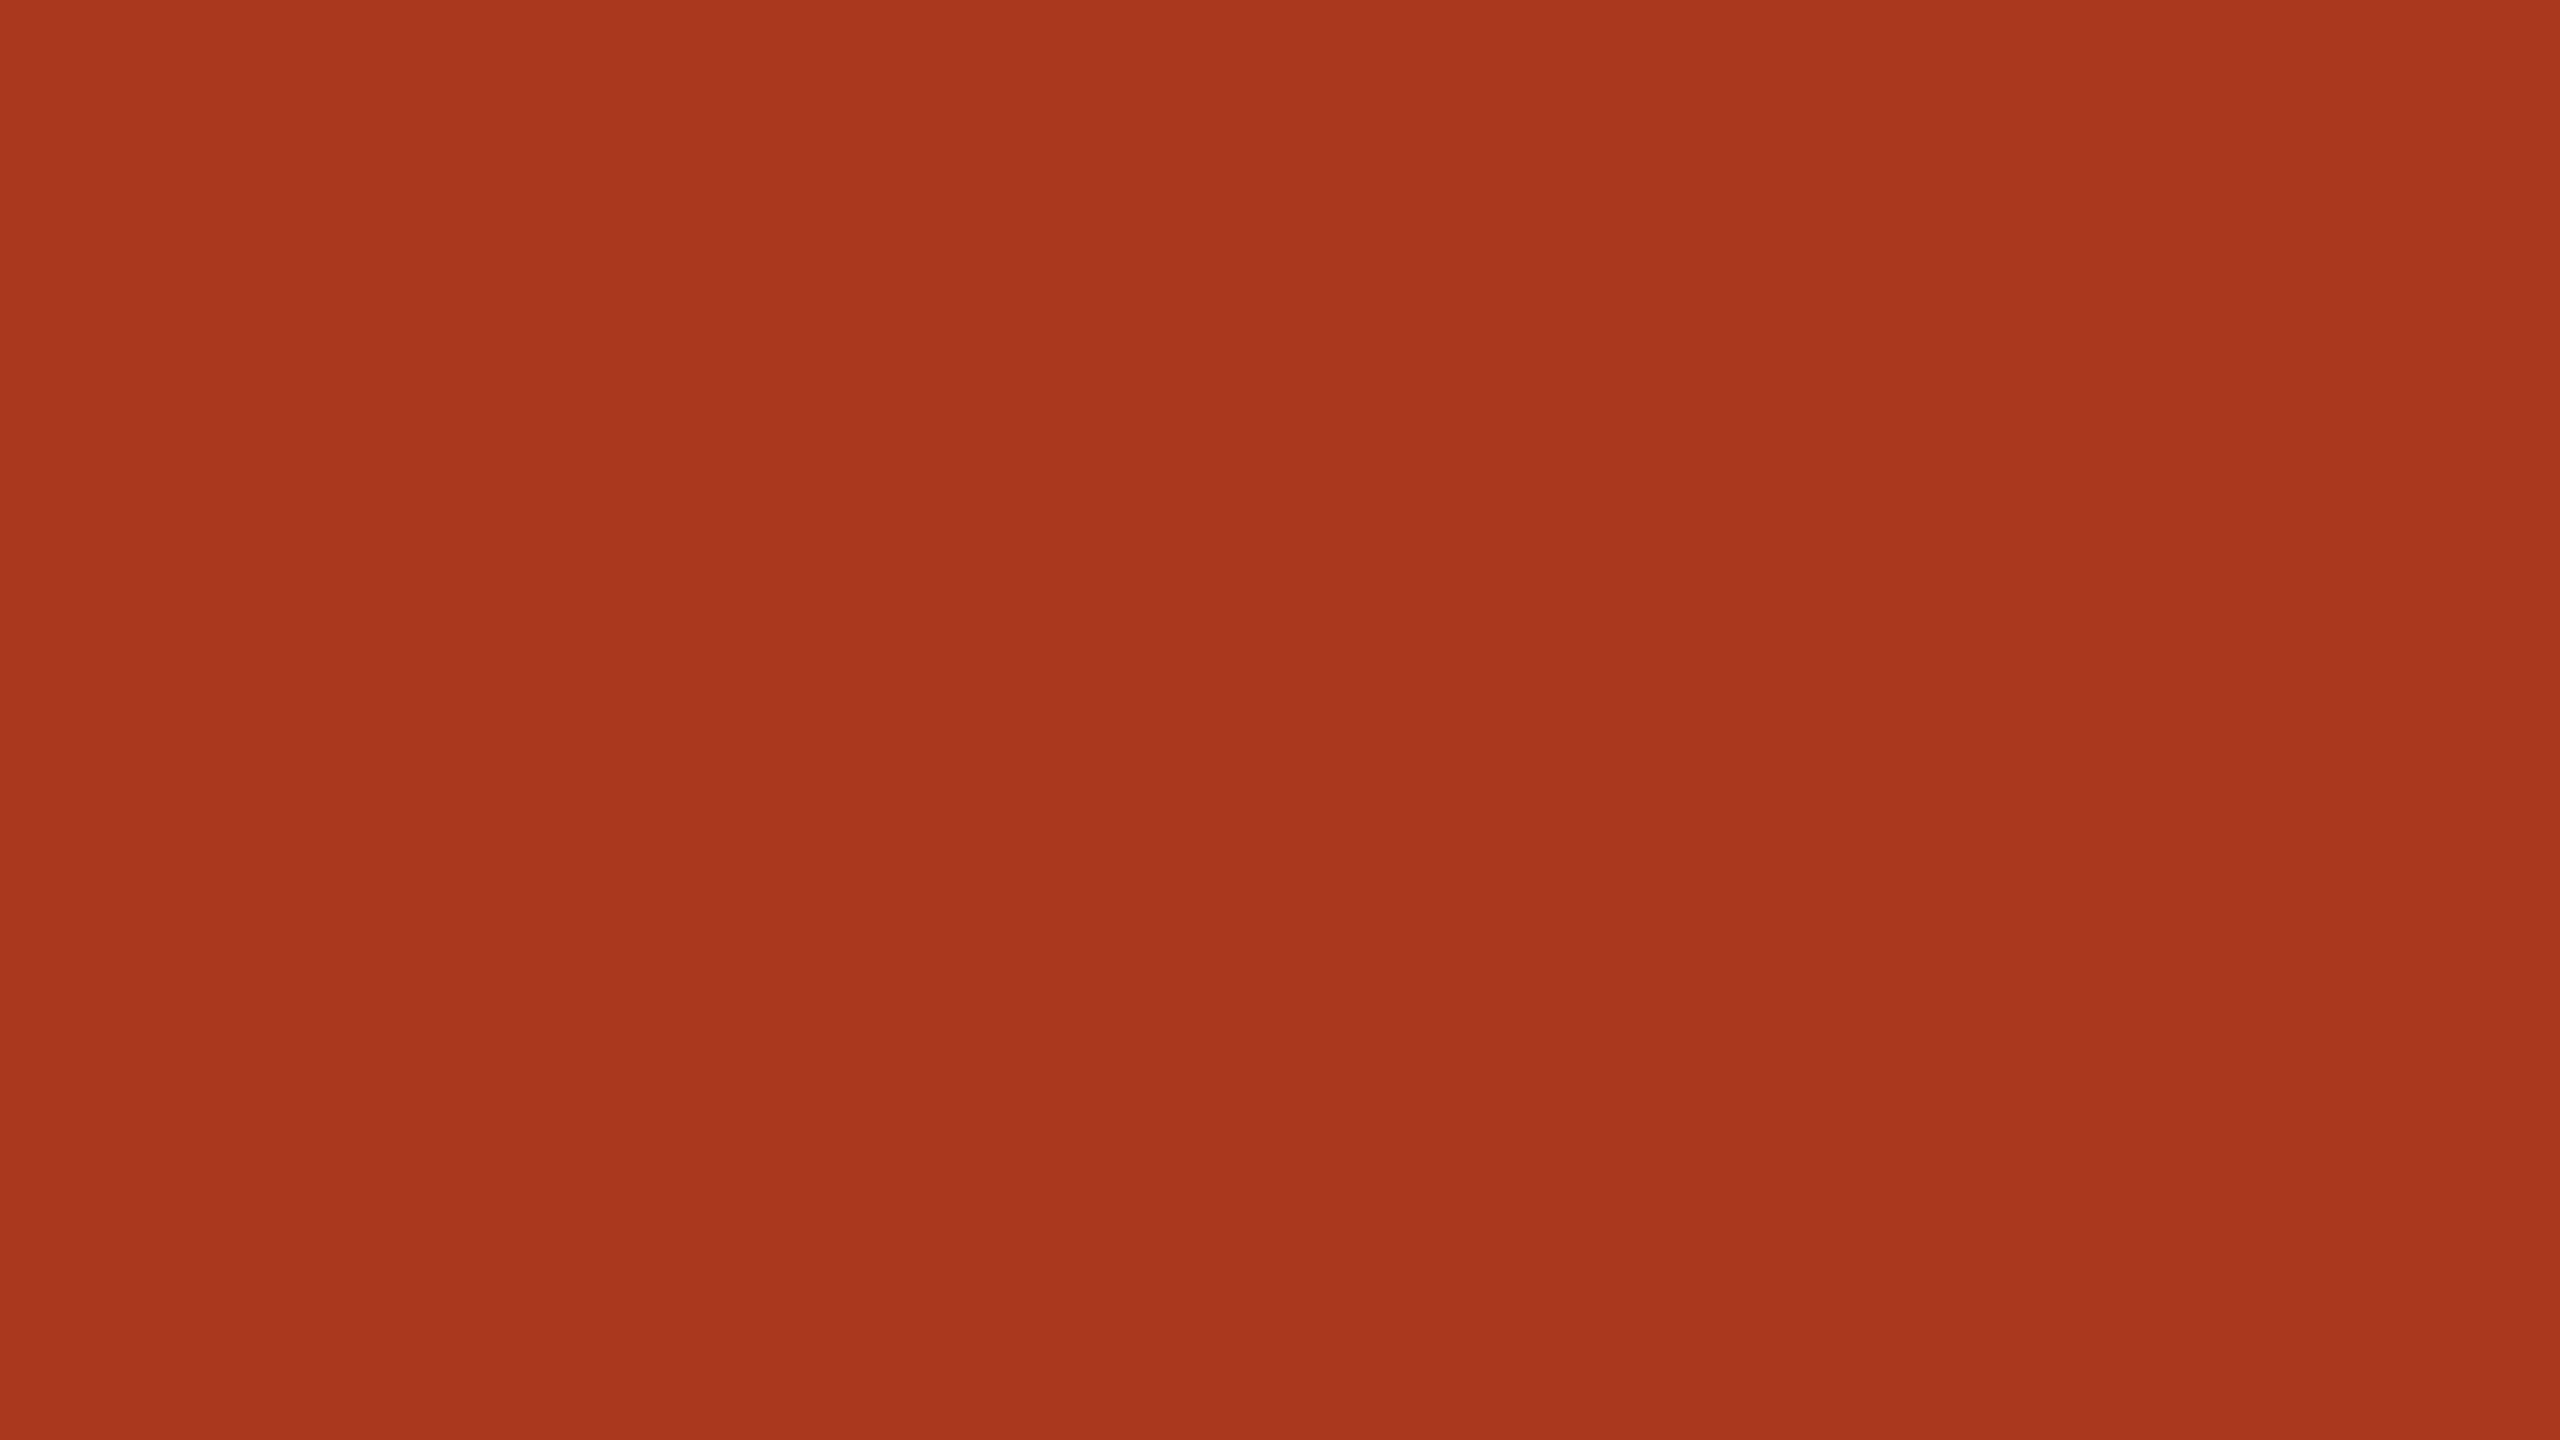 2560x1440 Chinese Red Solid Color Background